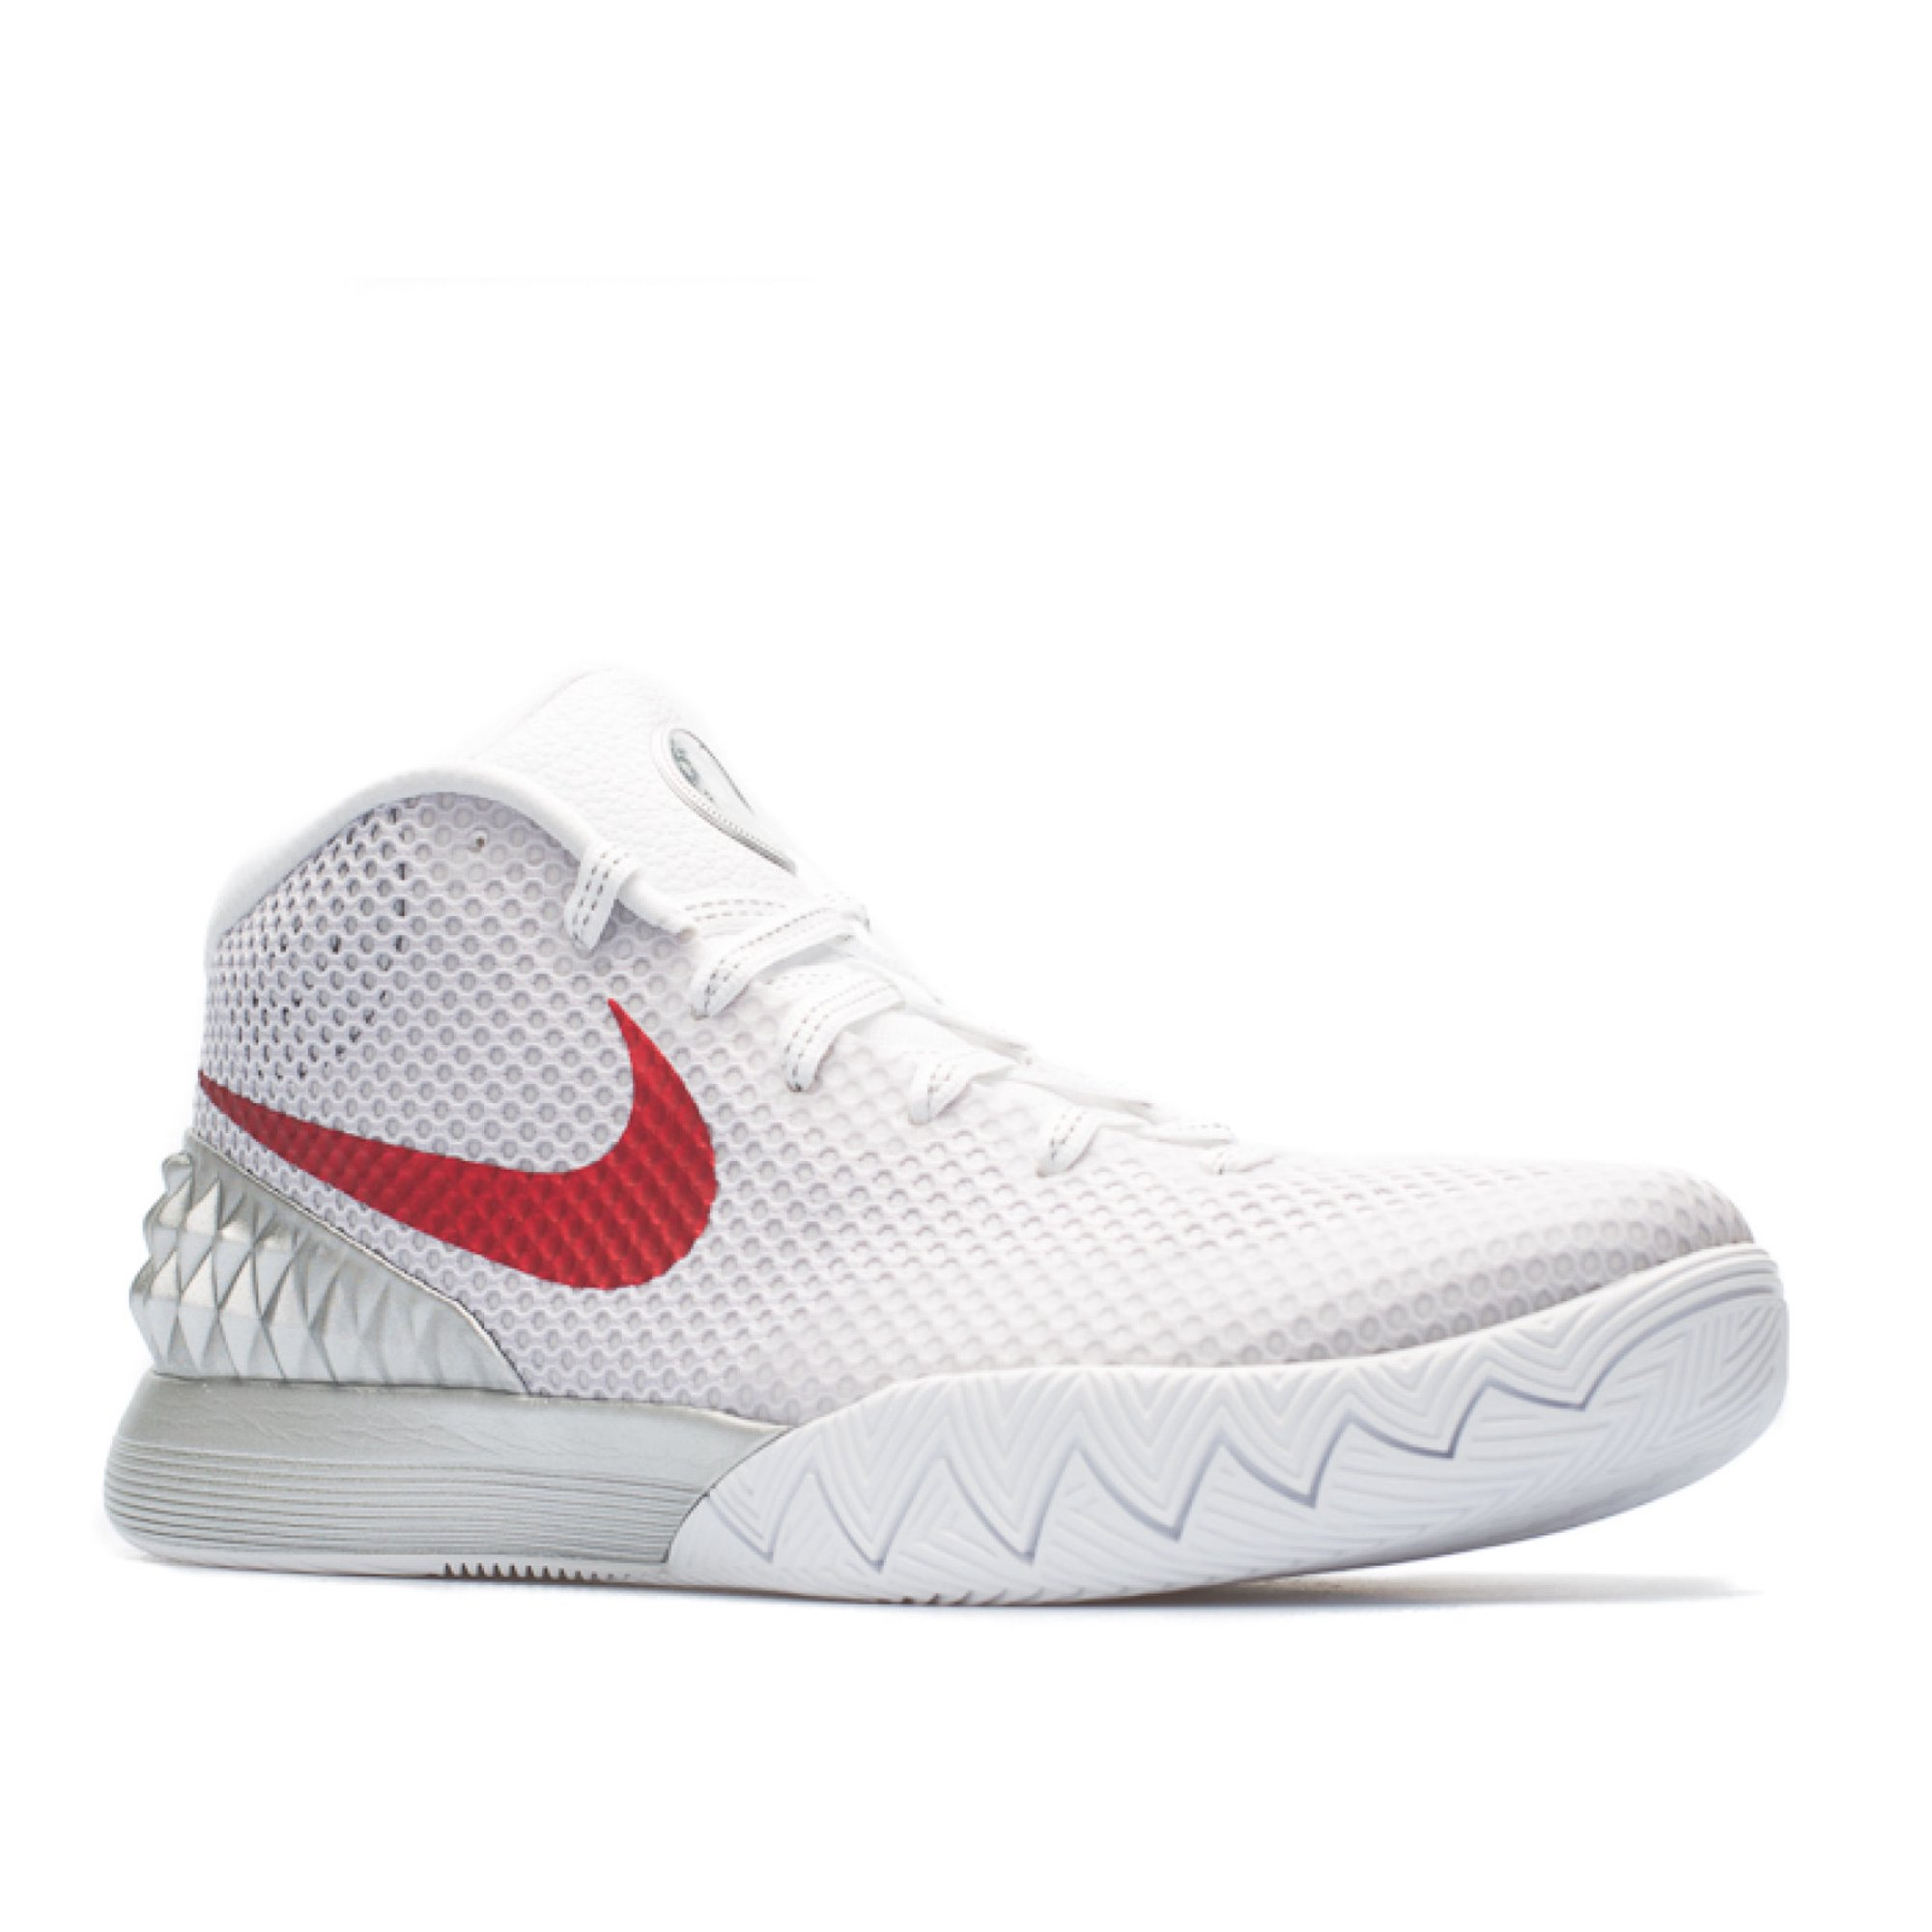 new products f82d1 462d7 Kyrie 1 Lmtd  Double Nickel  - 812559-160 - Size 12   Walmart Canada